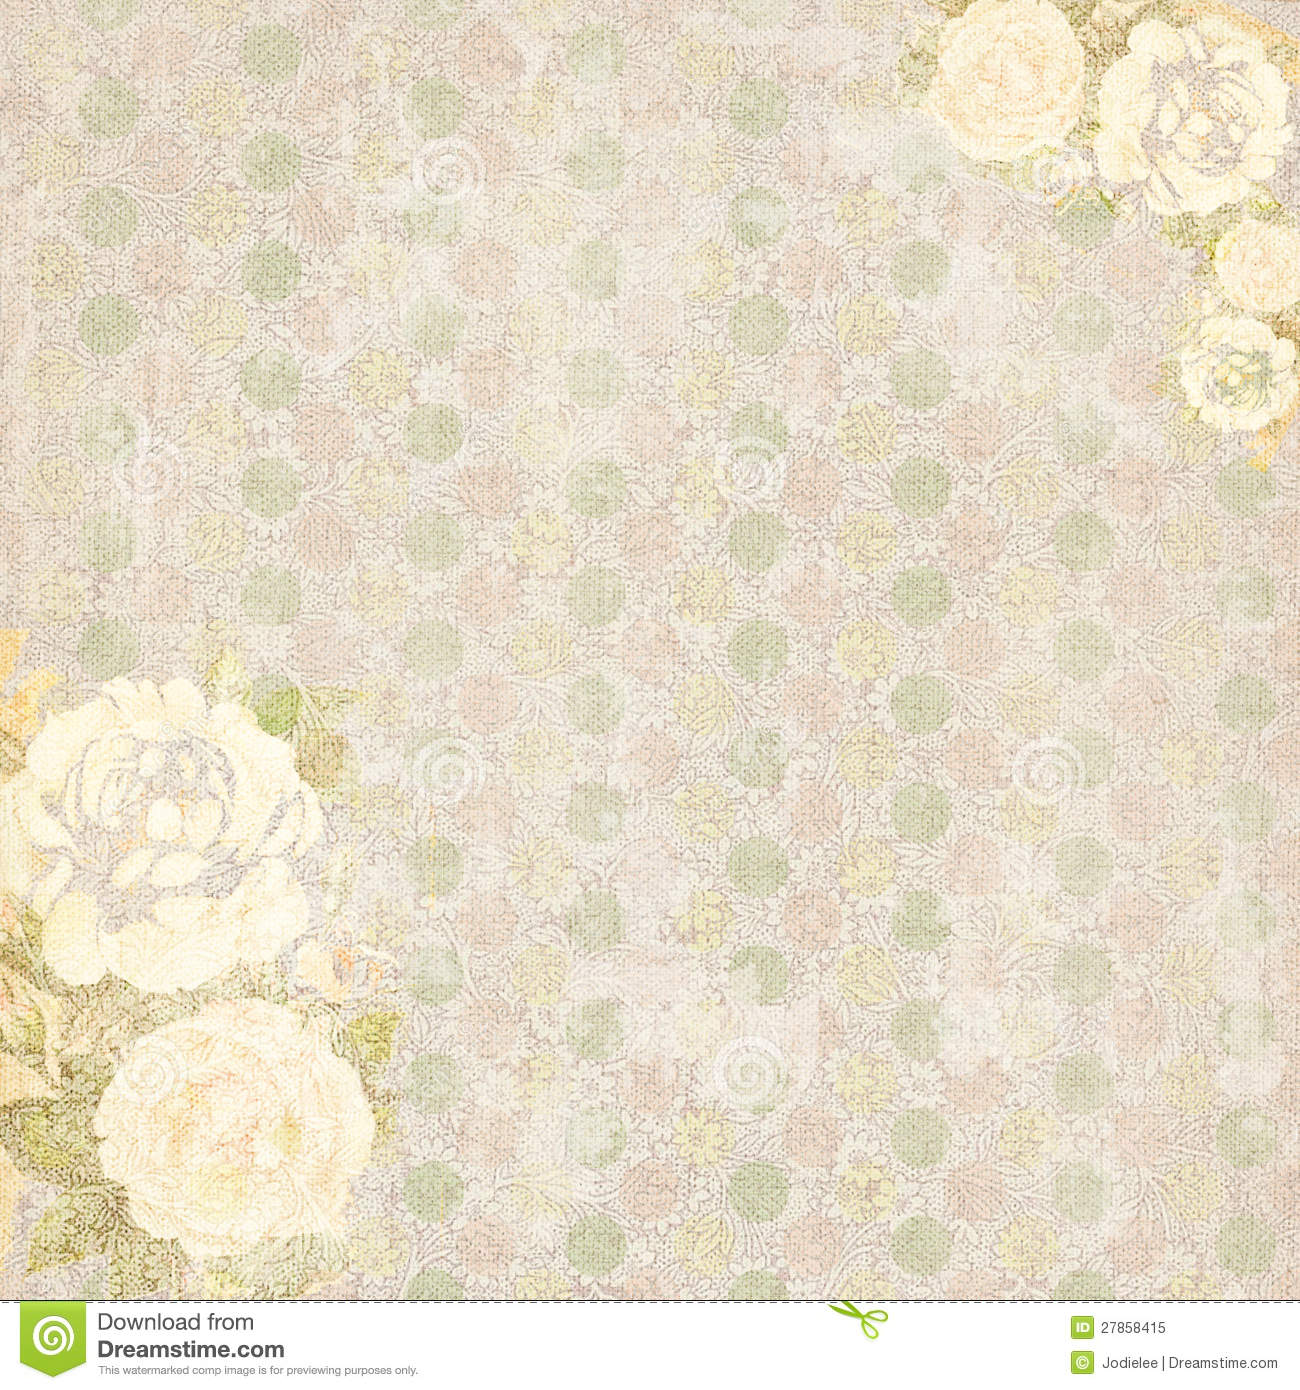 Vintage Shabby Chic Rose Floral Pattern Background